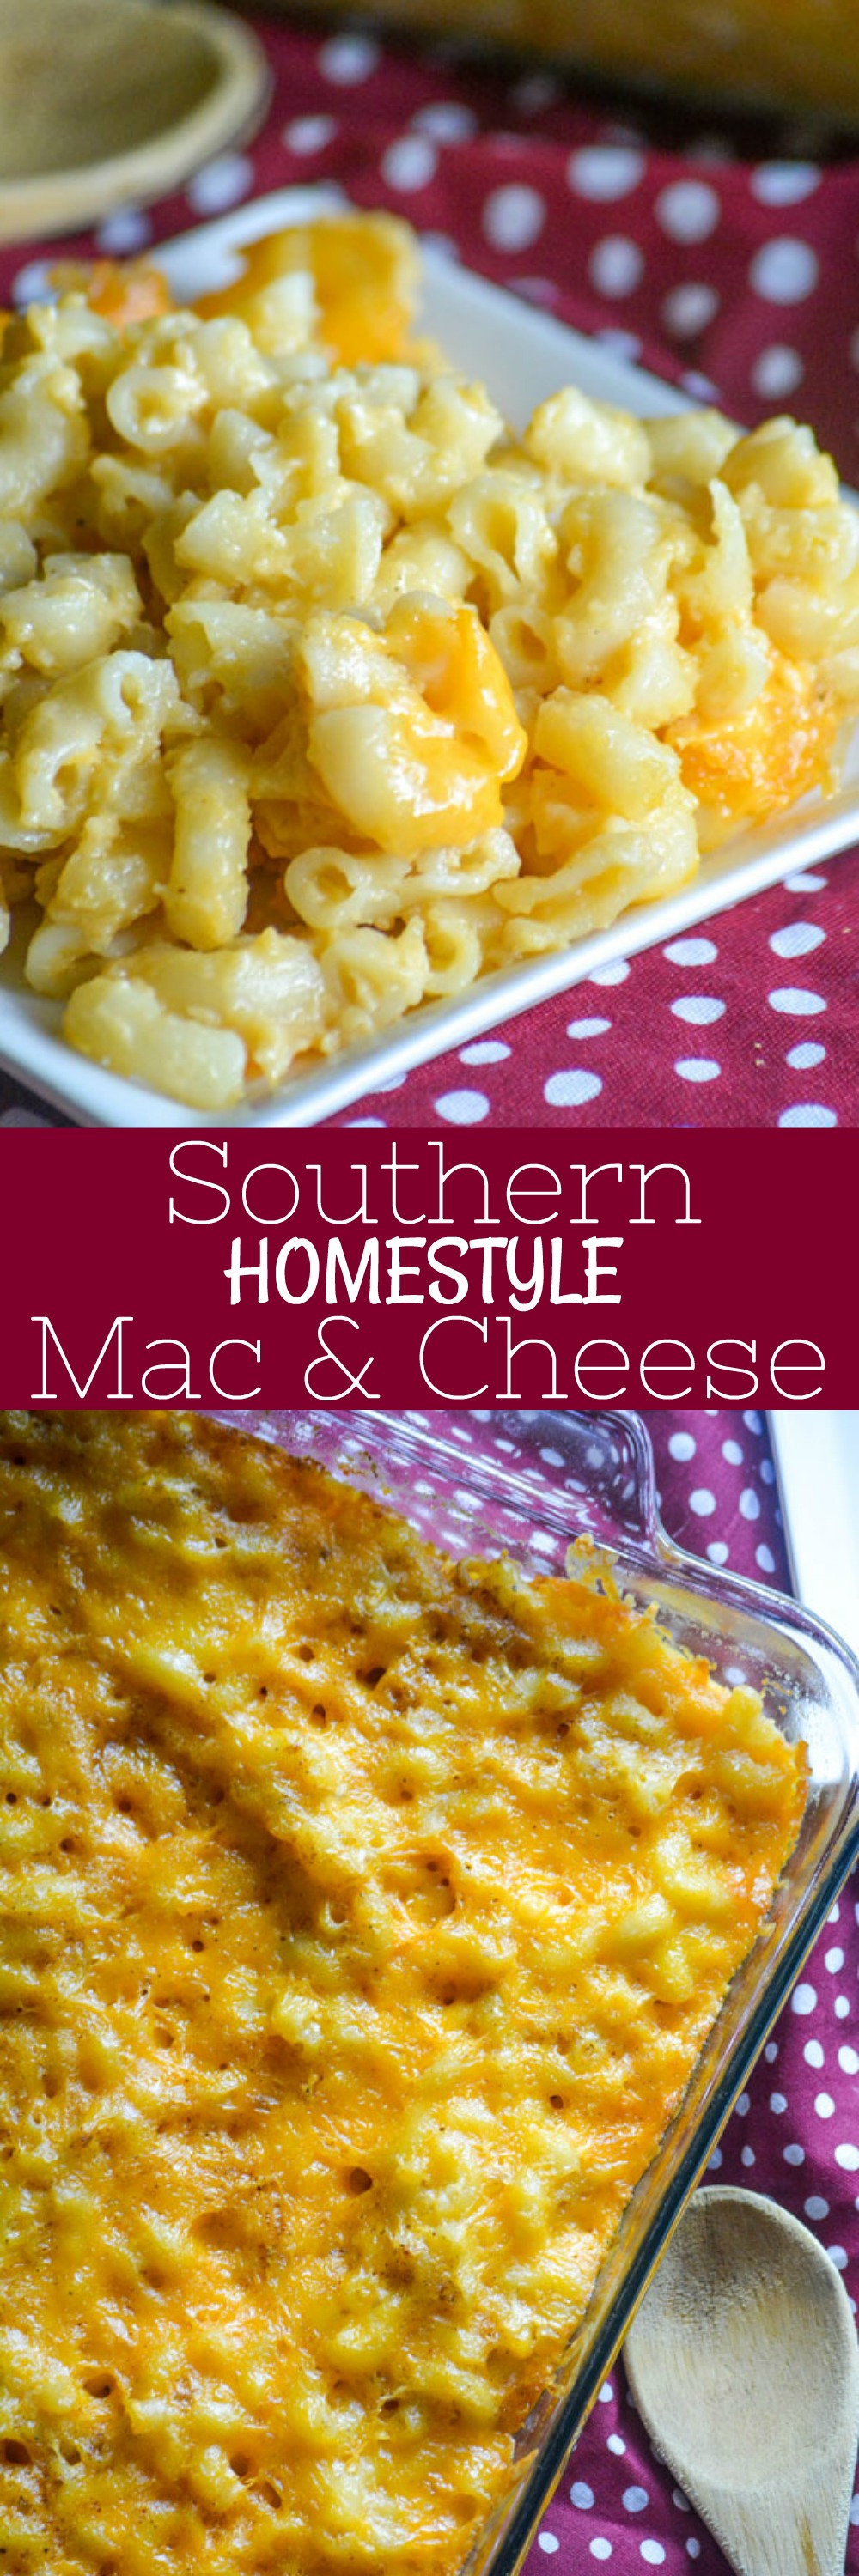 Creamy baked macaroni just like Grandma used to make, this Southern Homestyle Mac And Cheese will bring a taste of 'home' to any meal. Whether it's a quick weeknight dinner, or a dish to share with family and friends- this is a must have side dish.